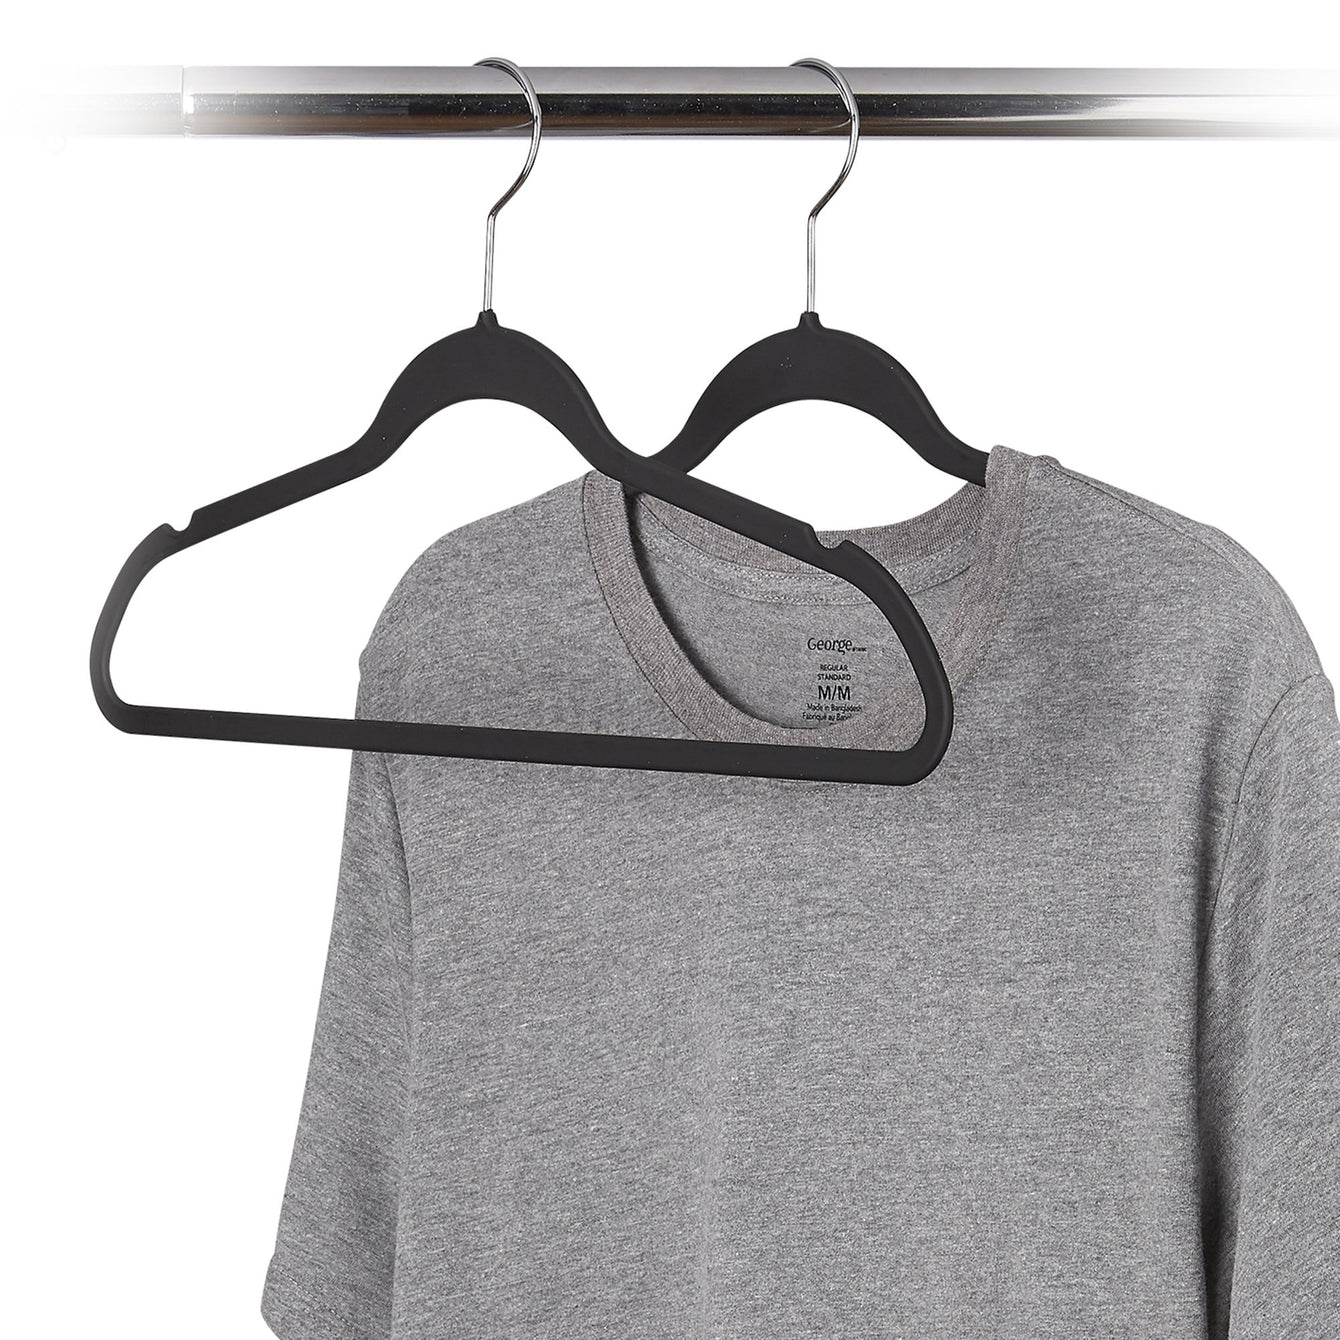 10 Pack Ultra-Grip Non-Slip Clothes Hanger - Style 0678